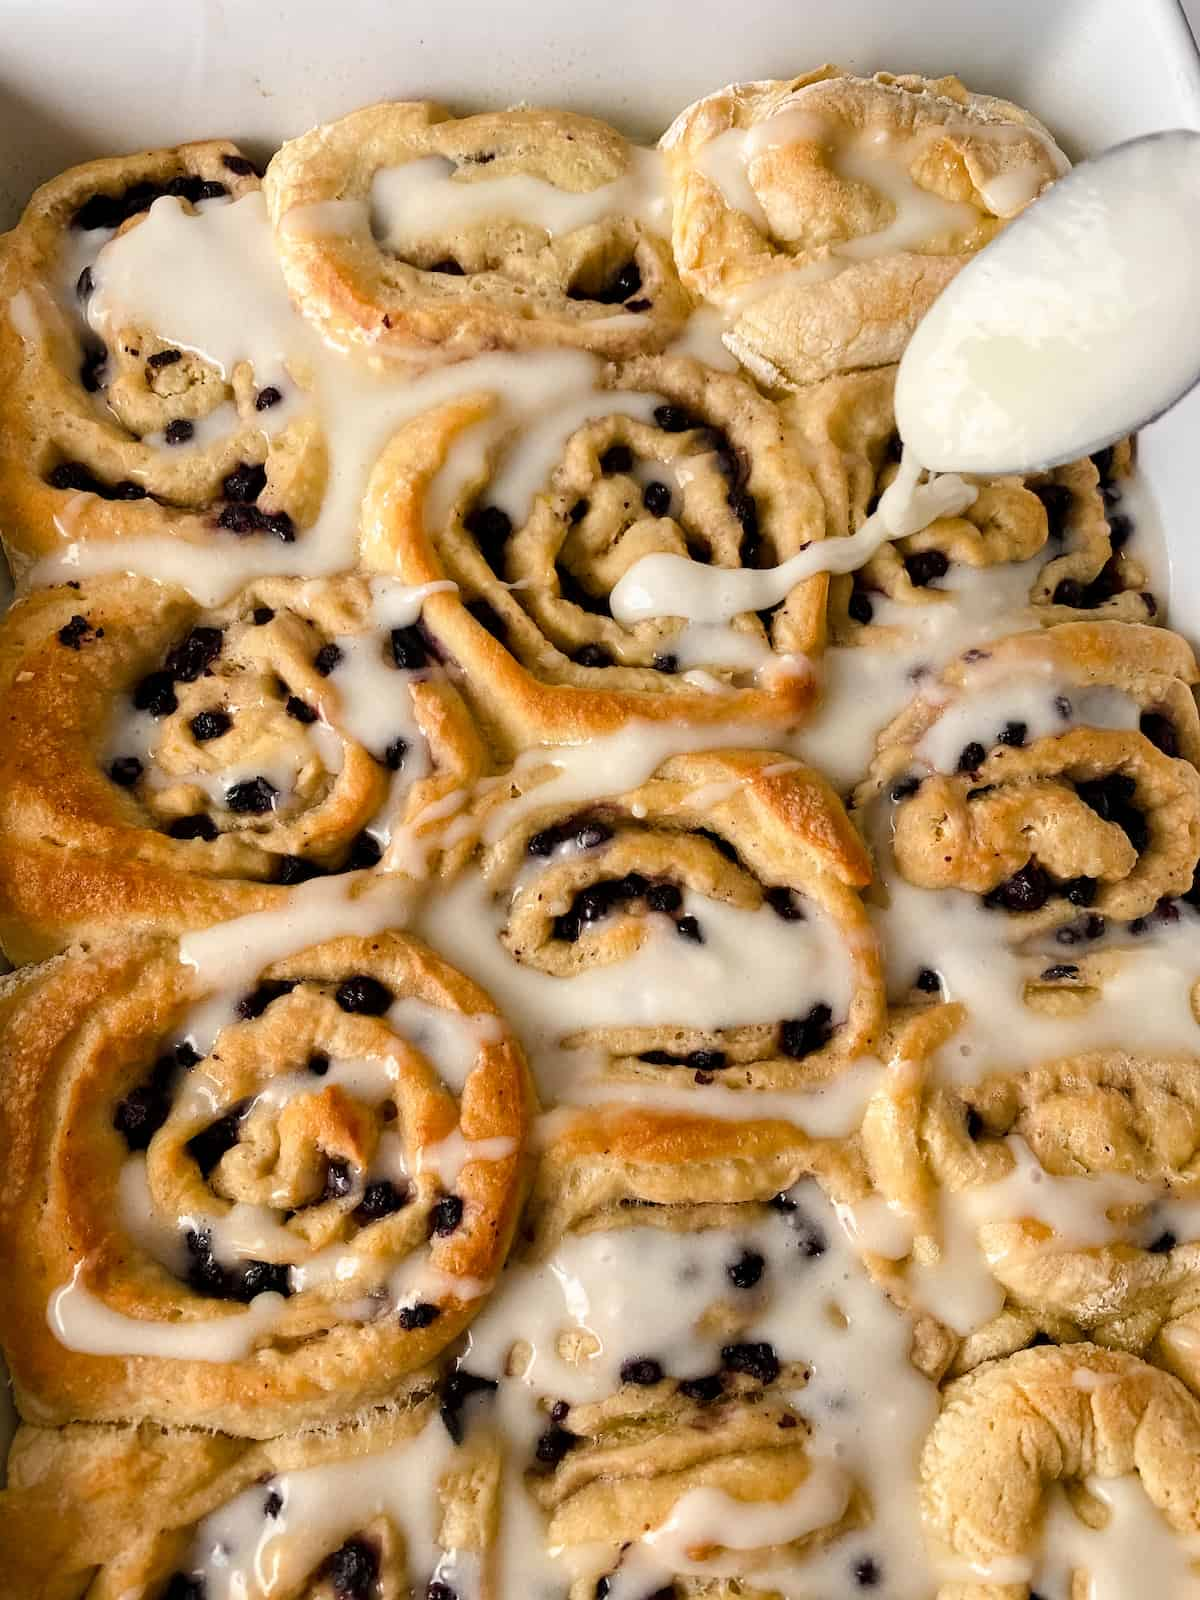 Icing blueberry sweet buns in white pan.